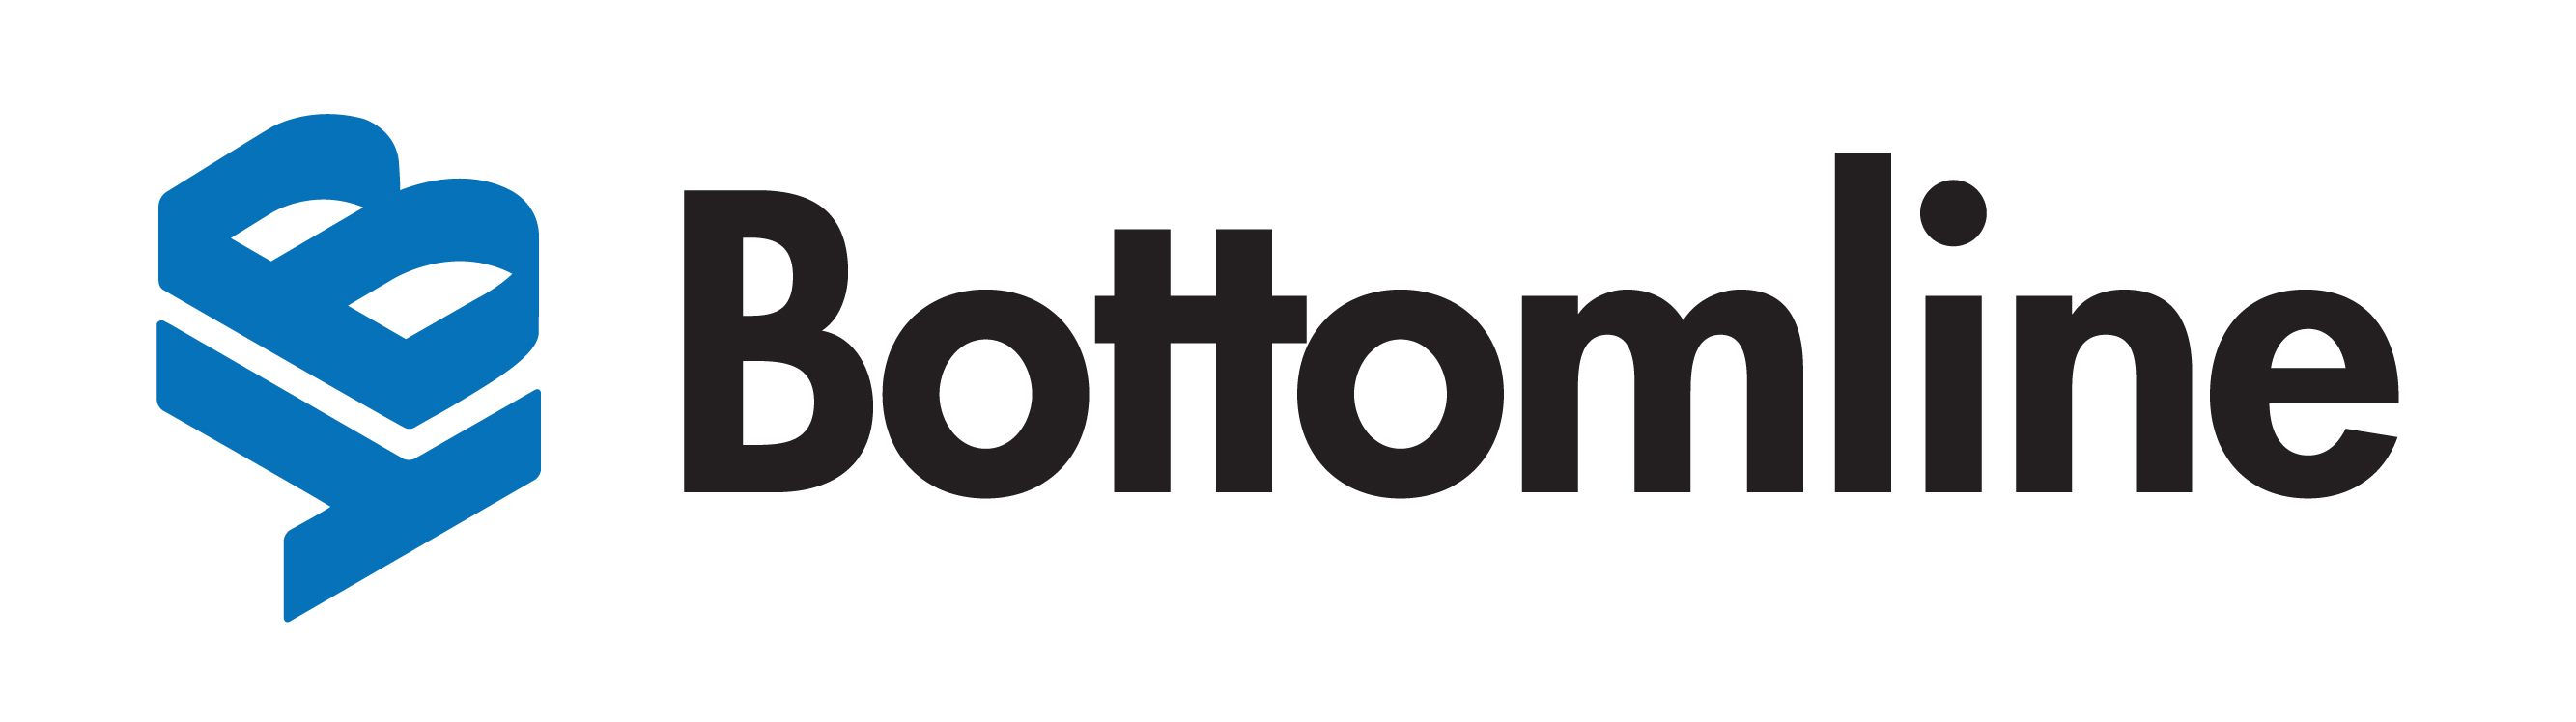 Bottomline Technology